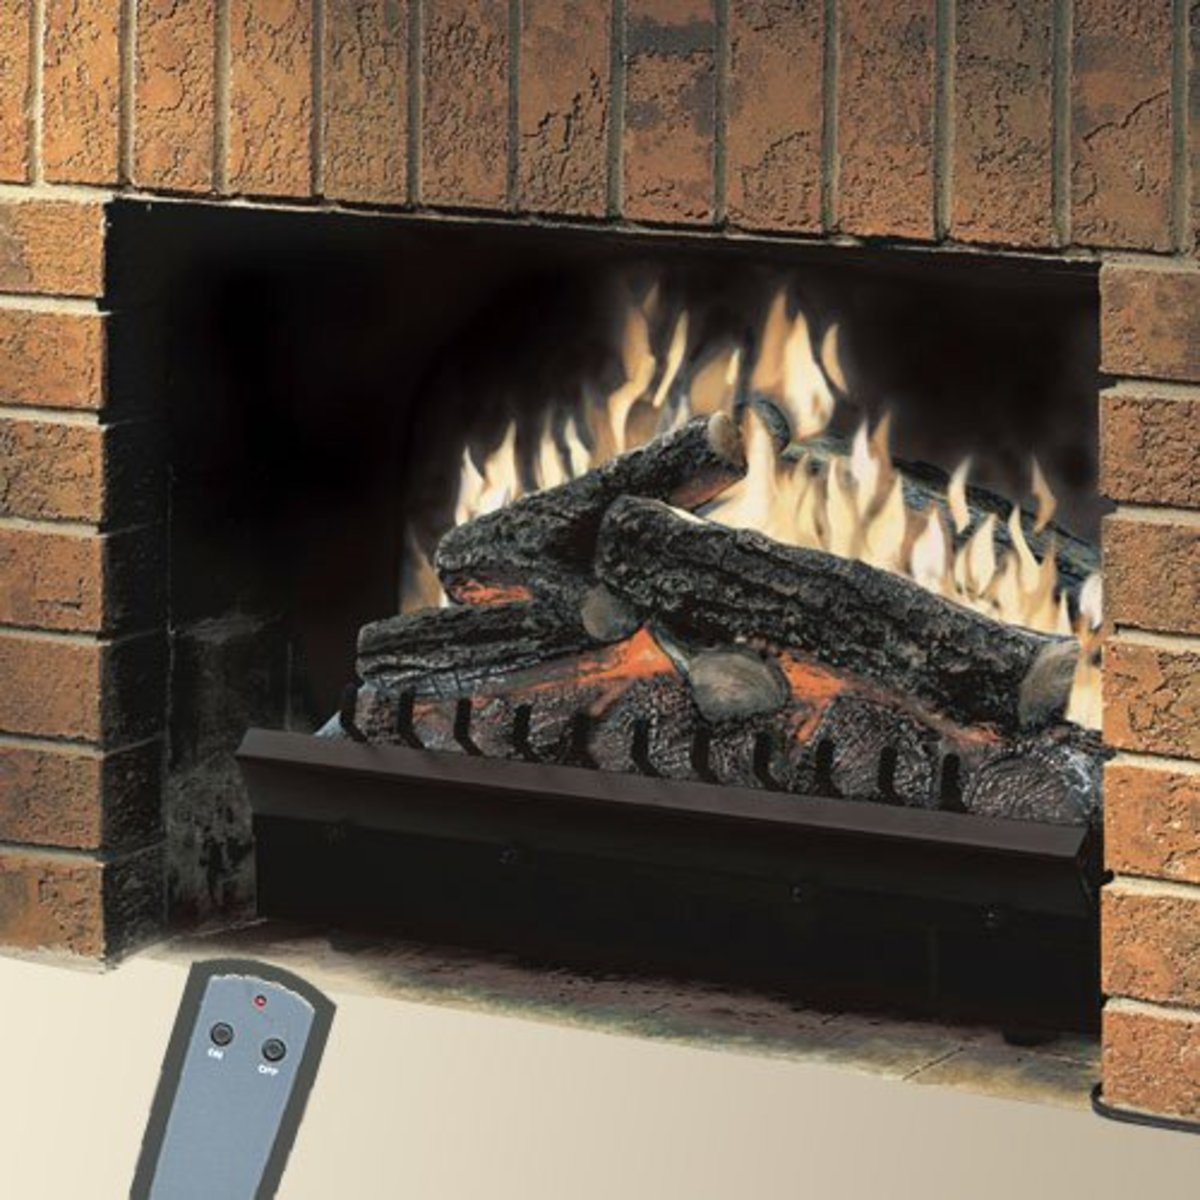 How Electric Inserts Differ From Vent Free Gas Fireplaces Dengarden Home And Garden